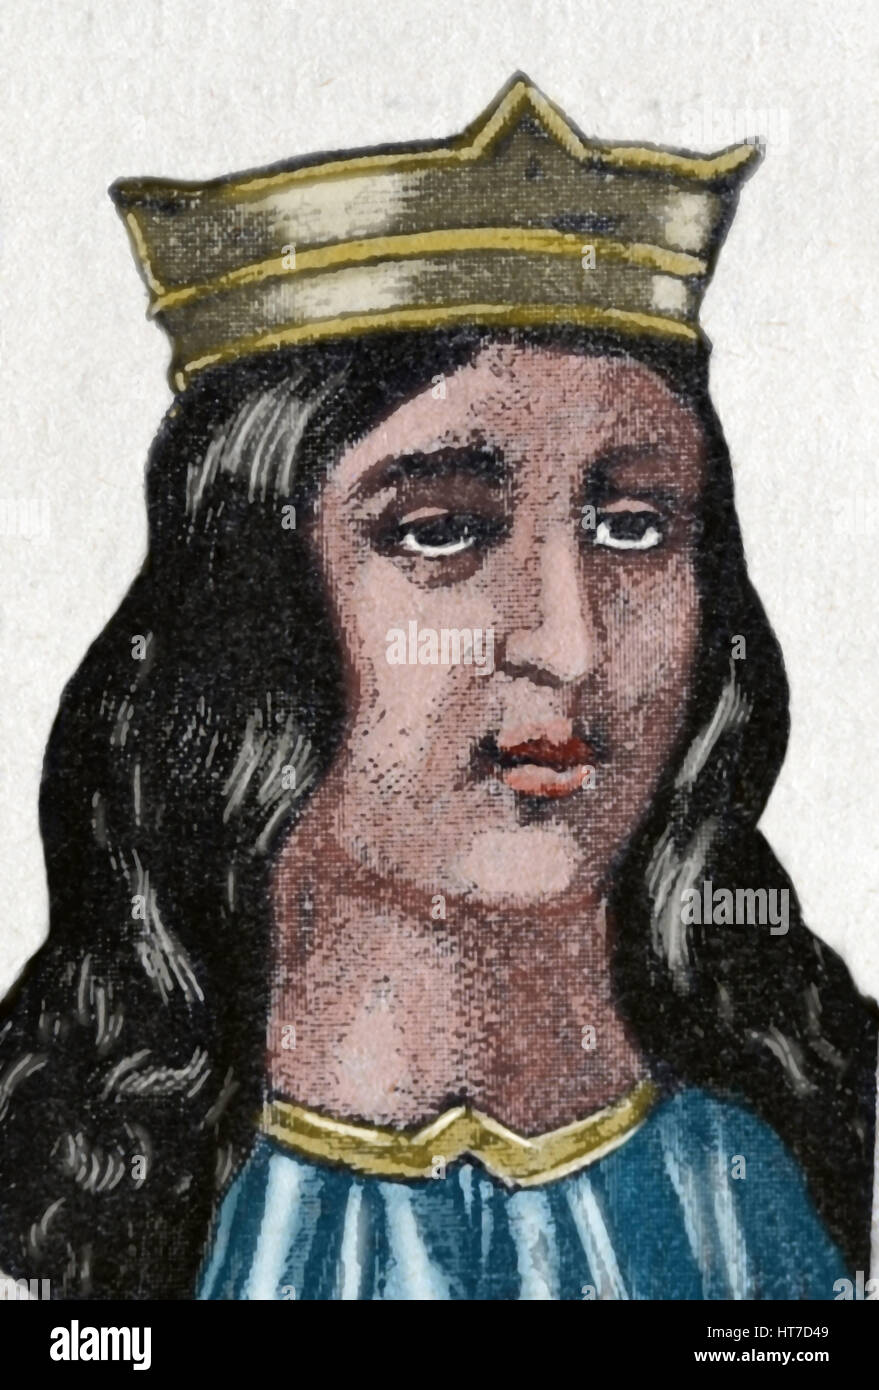 Maria de Molina or Lady of Molina (1265-1321). Queen consort of Castile-Leon from 1284-1295. Portrait. Engraving. - Stock Image